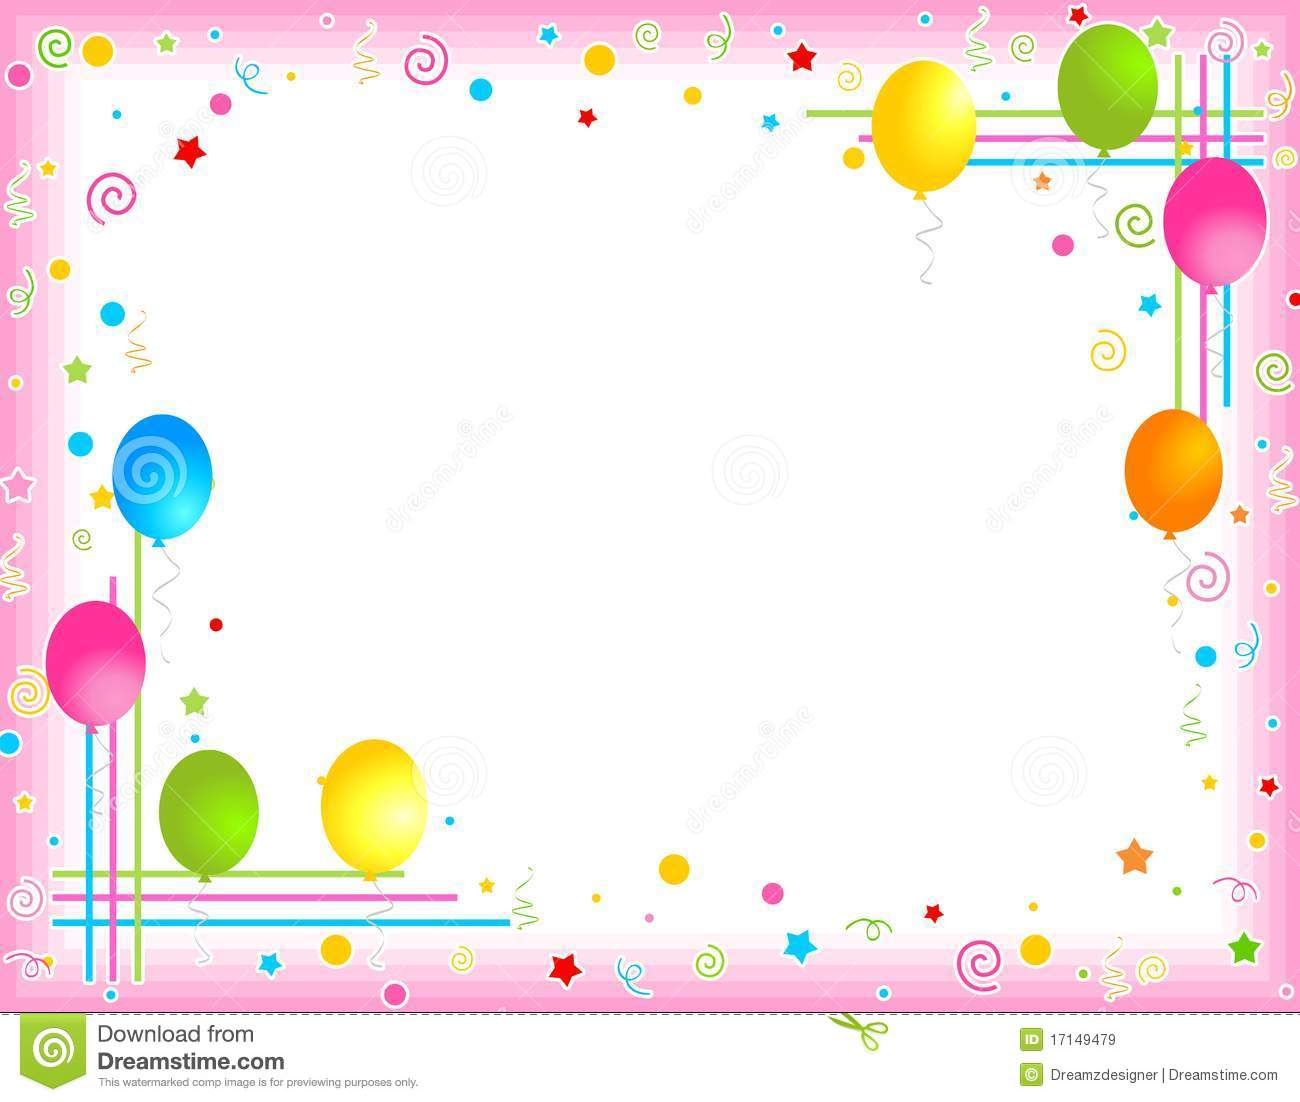 birthday party clip art borders ; colorful-balloons-border-party-frame-17149479